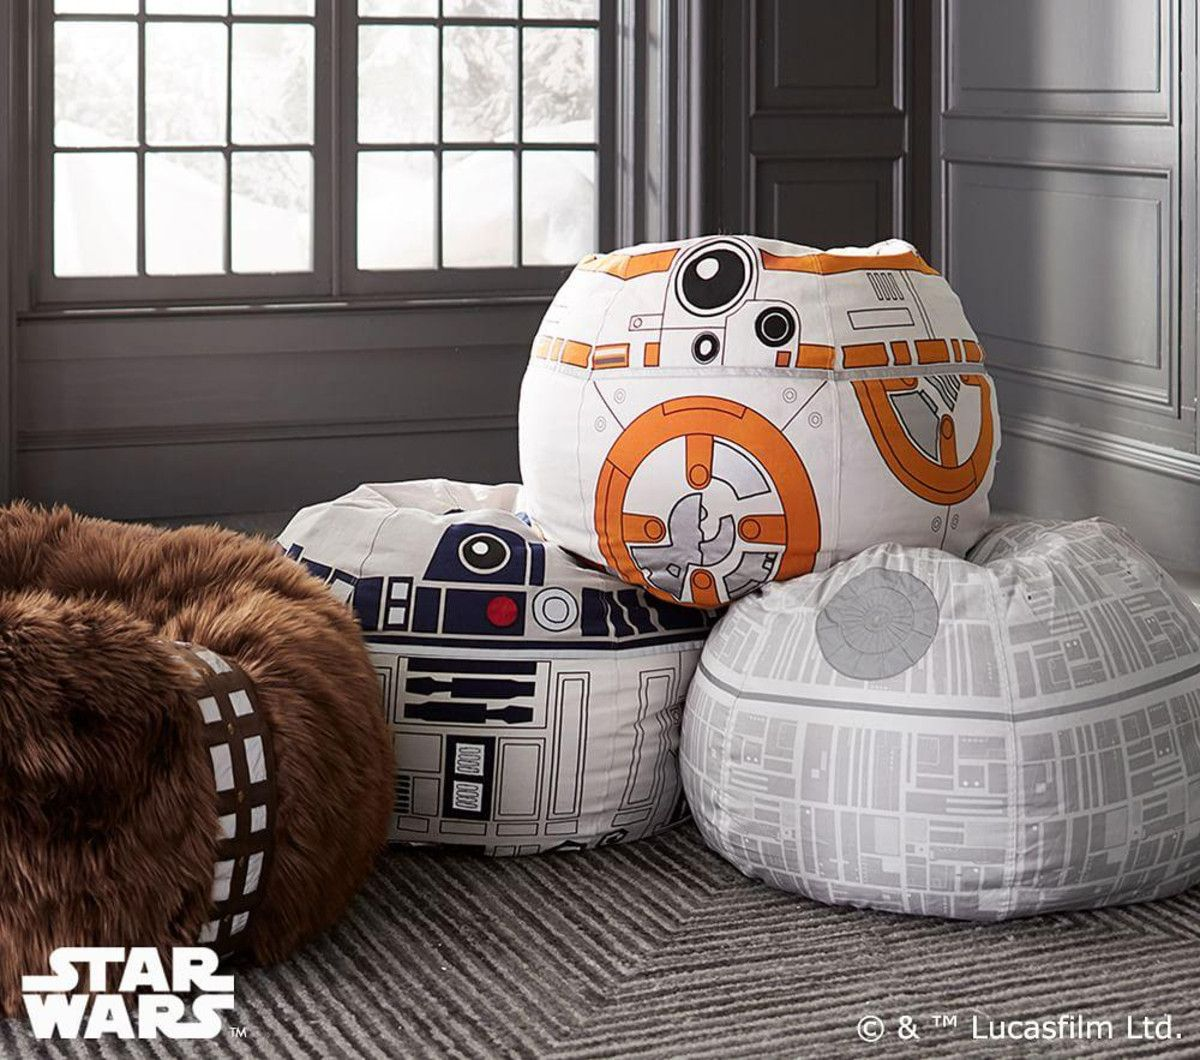 Star Wars Chairs Star Wars R2 D2 Anywhere Beanbag Interior Design